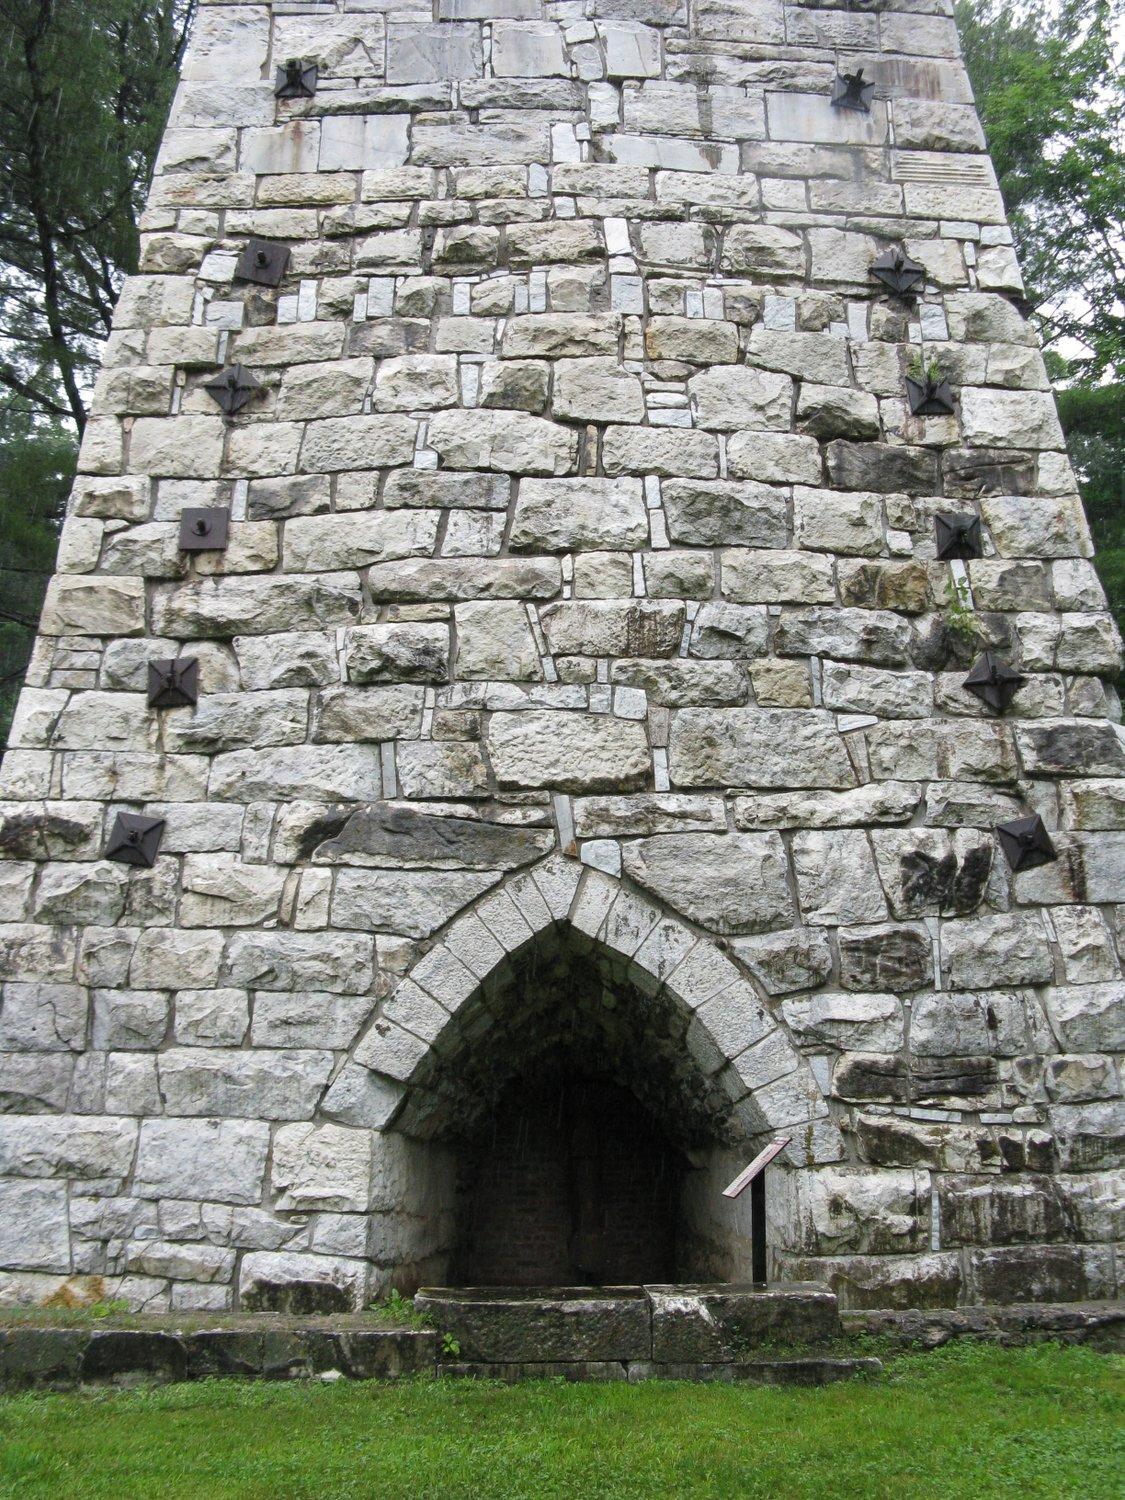 Tuyere arches are found on three faces of the furnace.